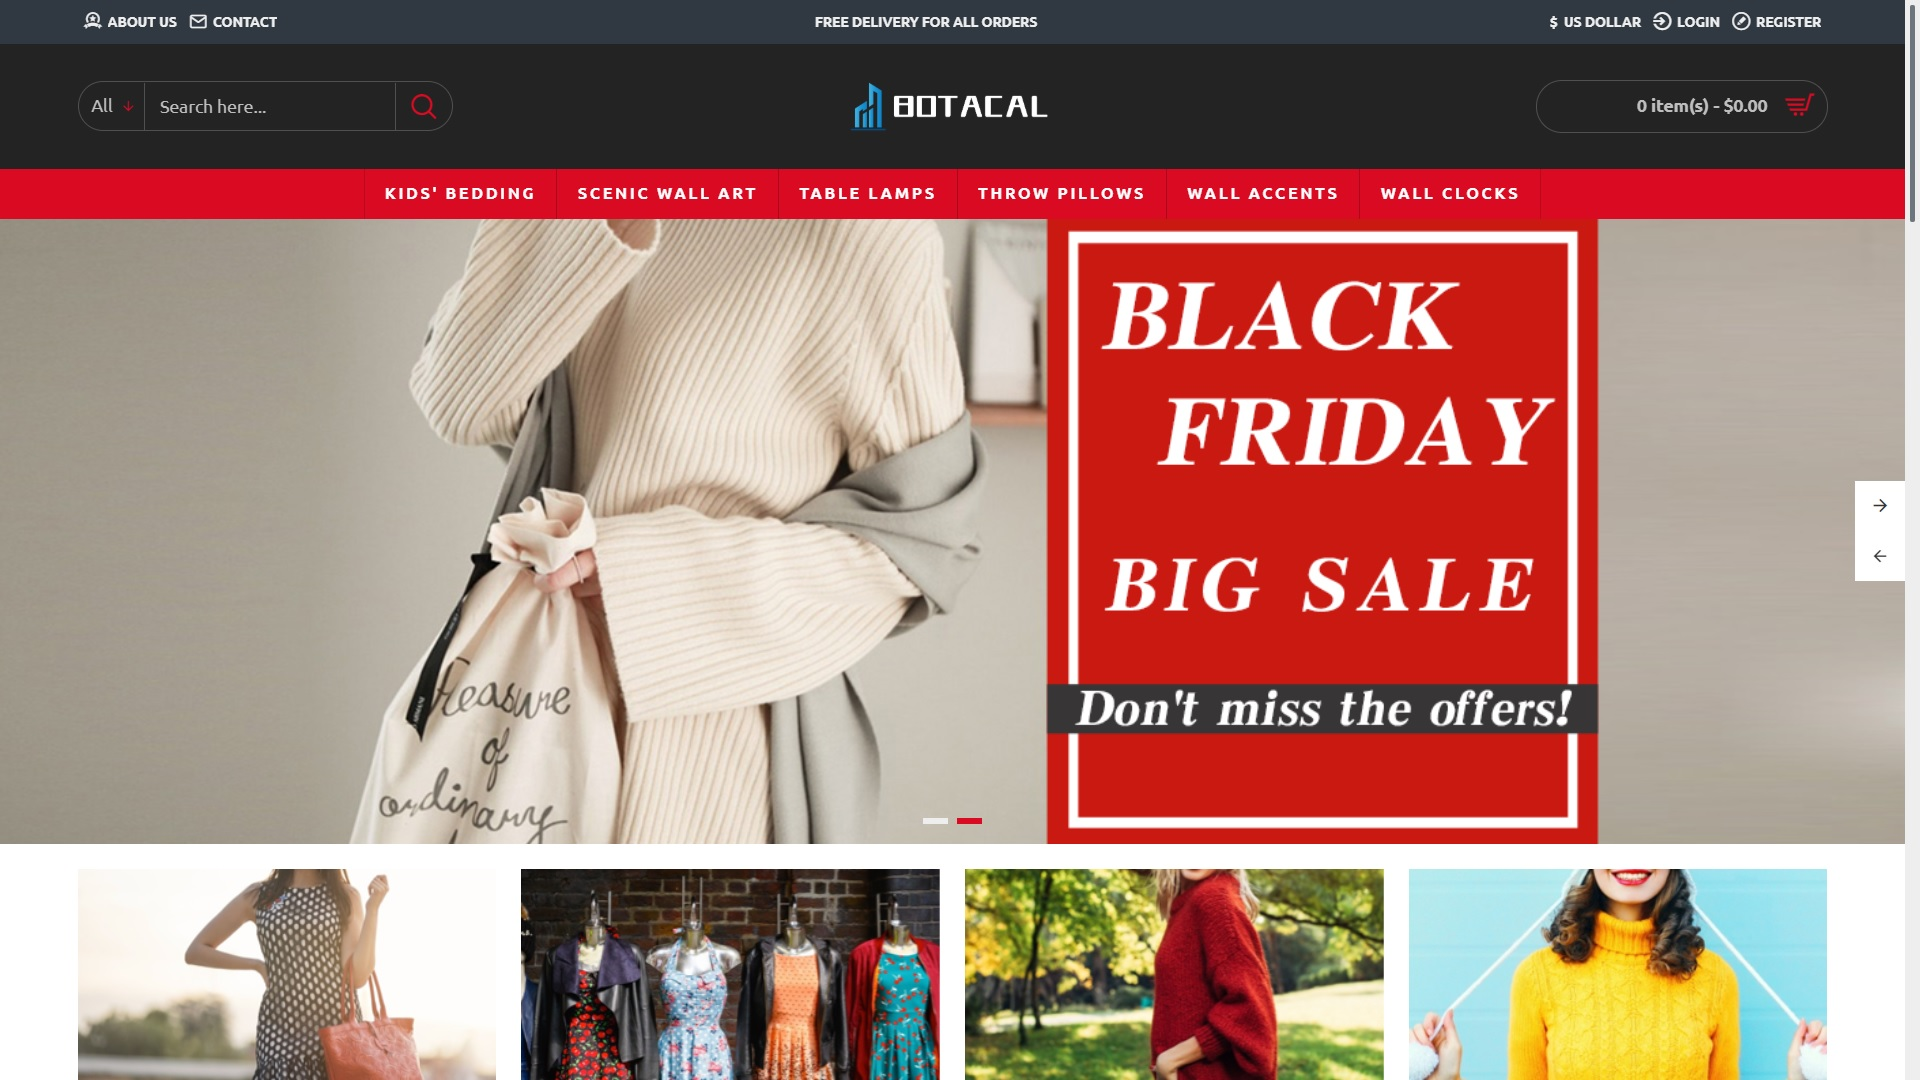 Is Botacal World a Scam? Review of the Online Store